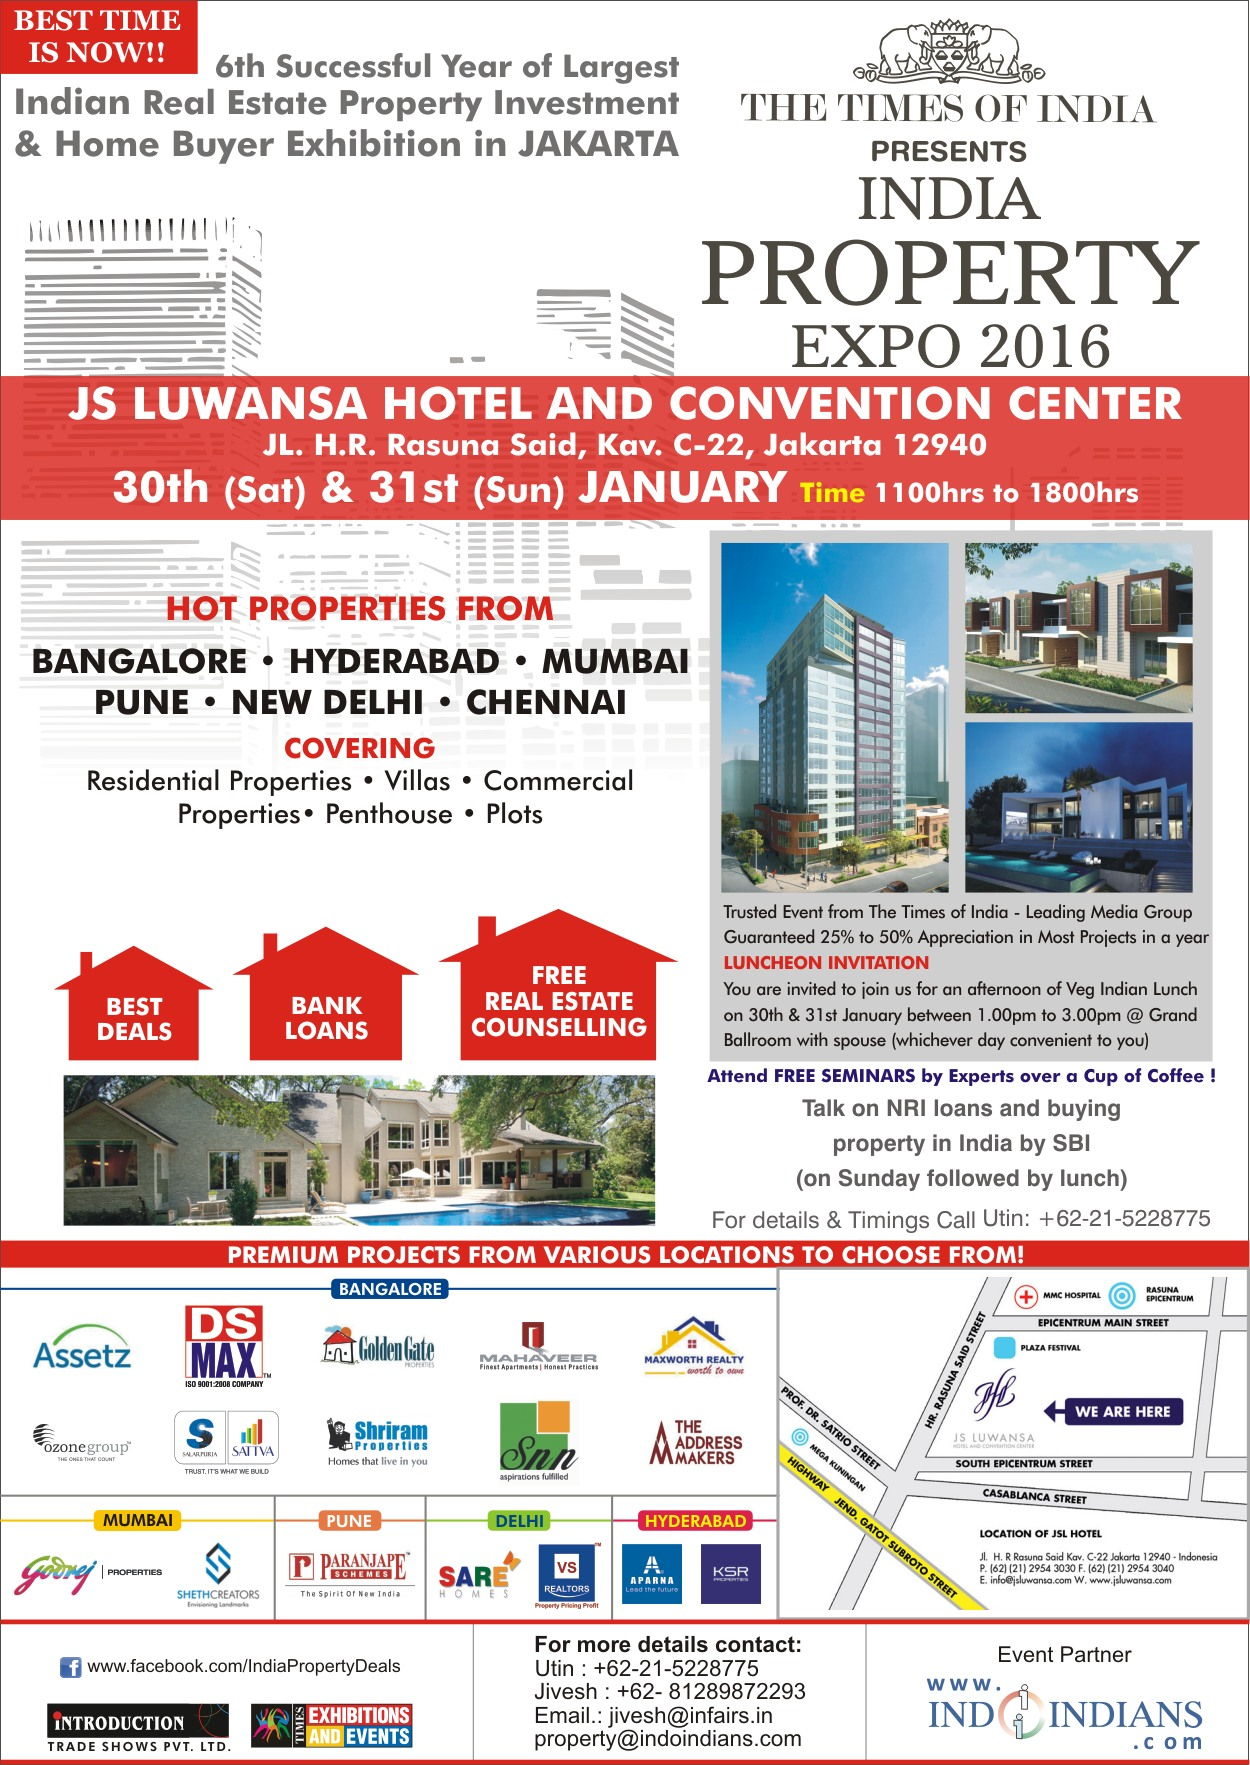 TIMES PROPERTY EXPO INDONESIA 2016